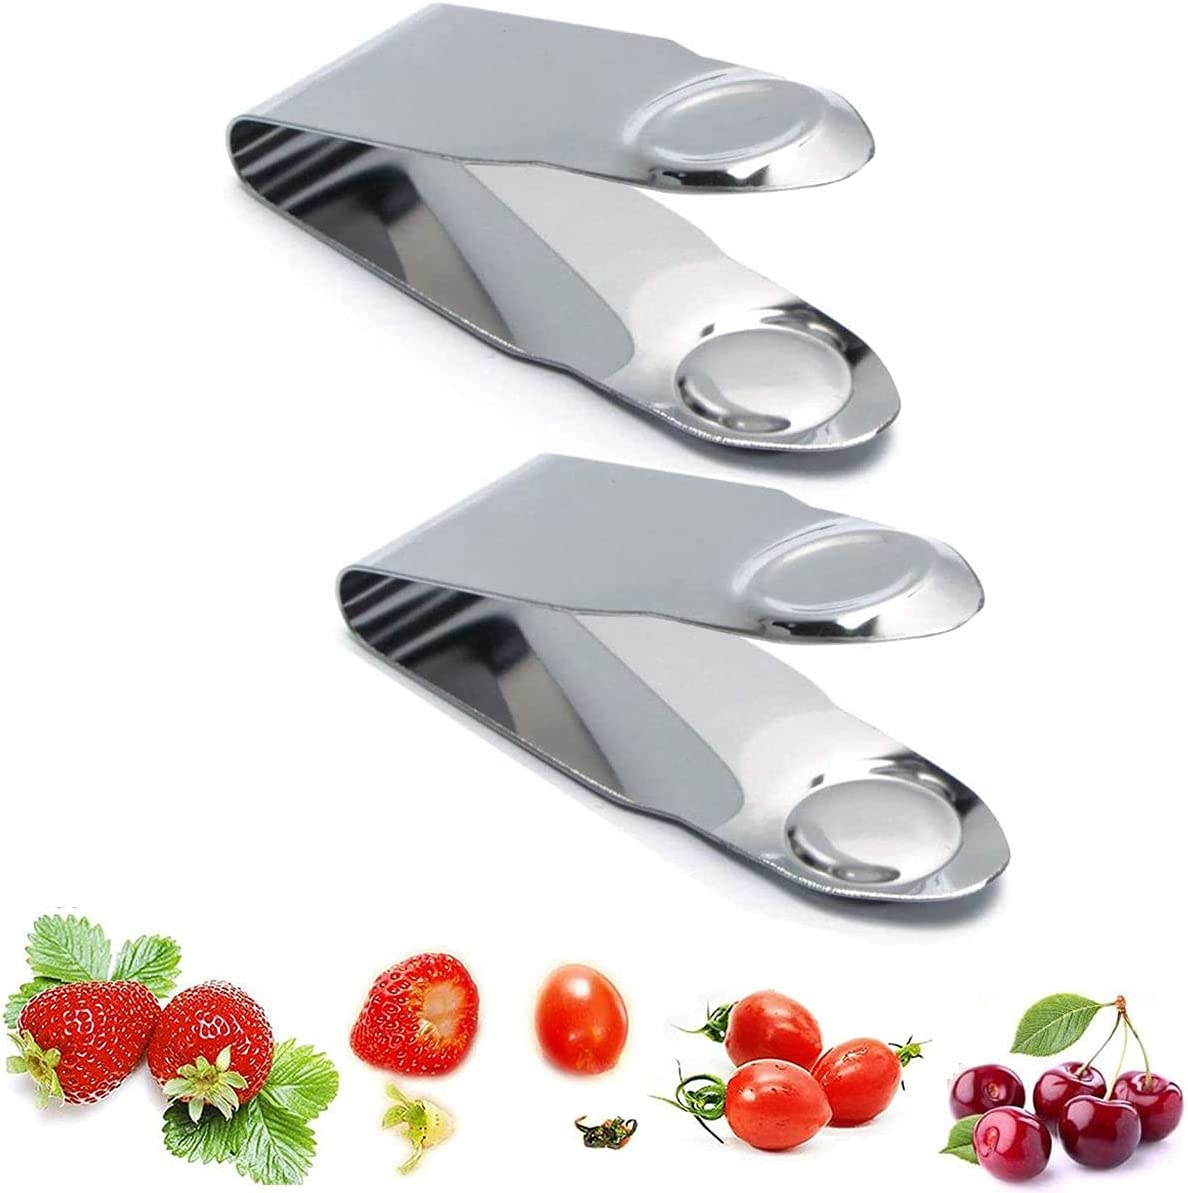 LIXIATIAN 2 Pack Stainless Steel Strawberry Re High material Huller Fruit Bombing new work Stem